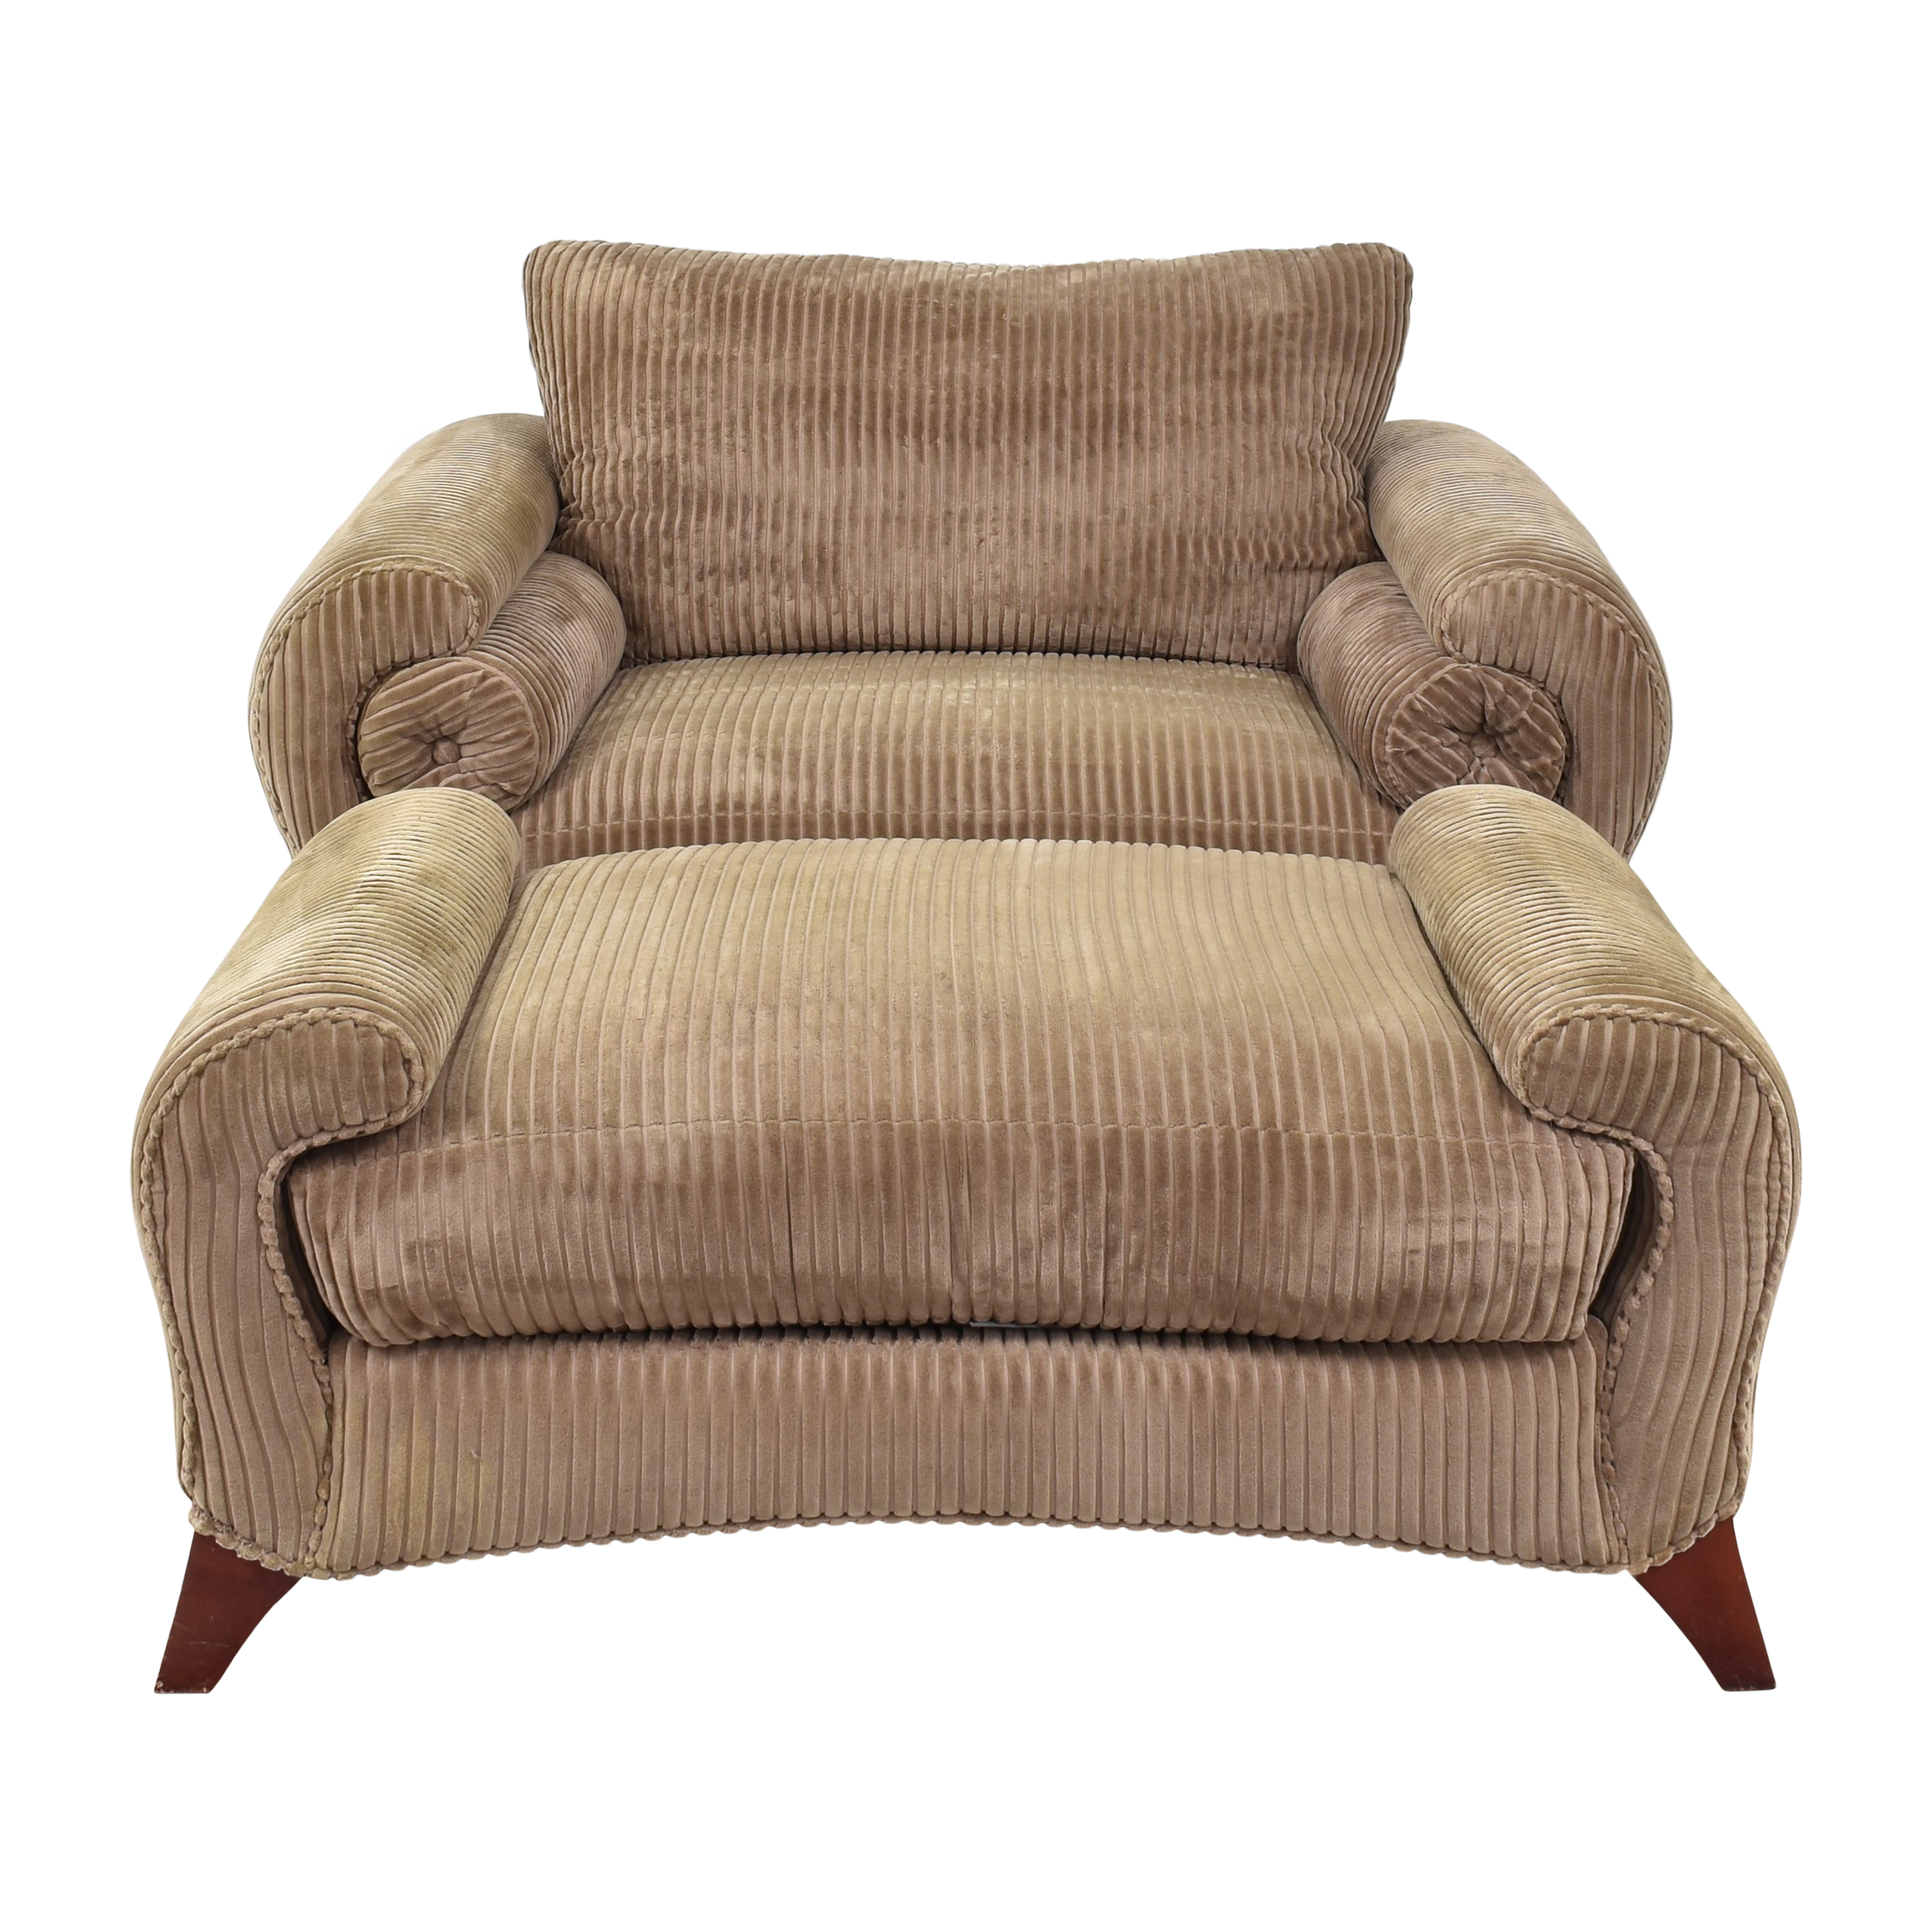 Weiman Weiman Club Chair and Ottoman second hand